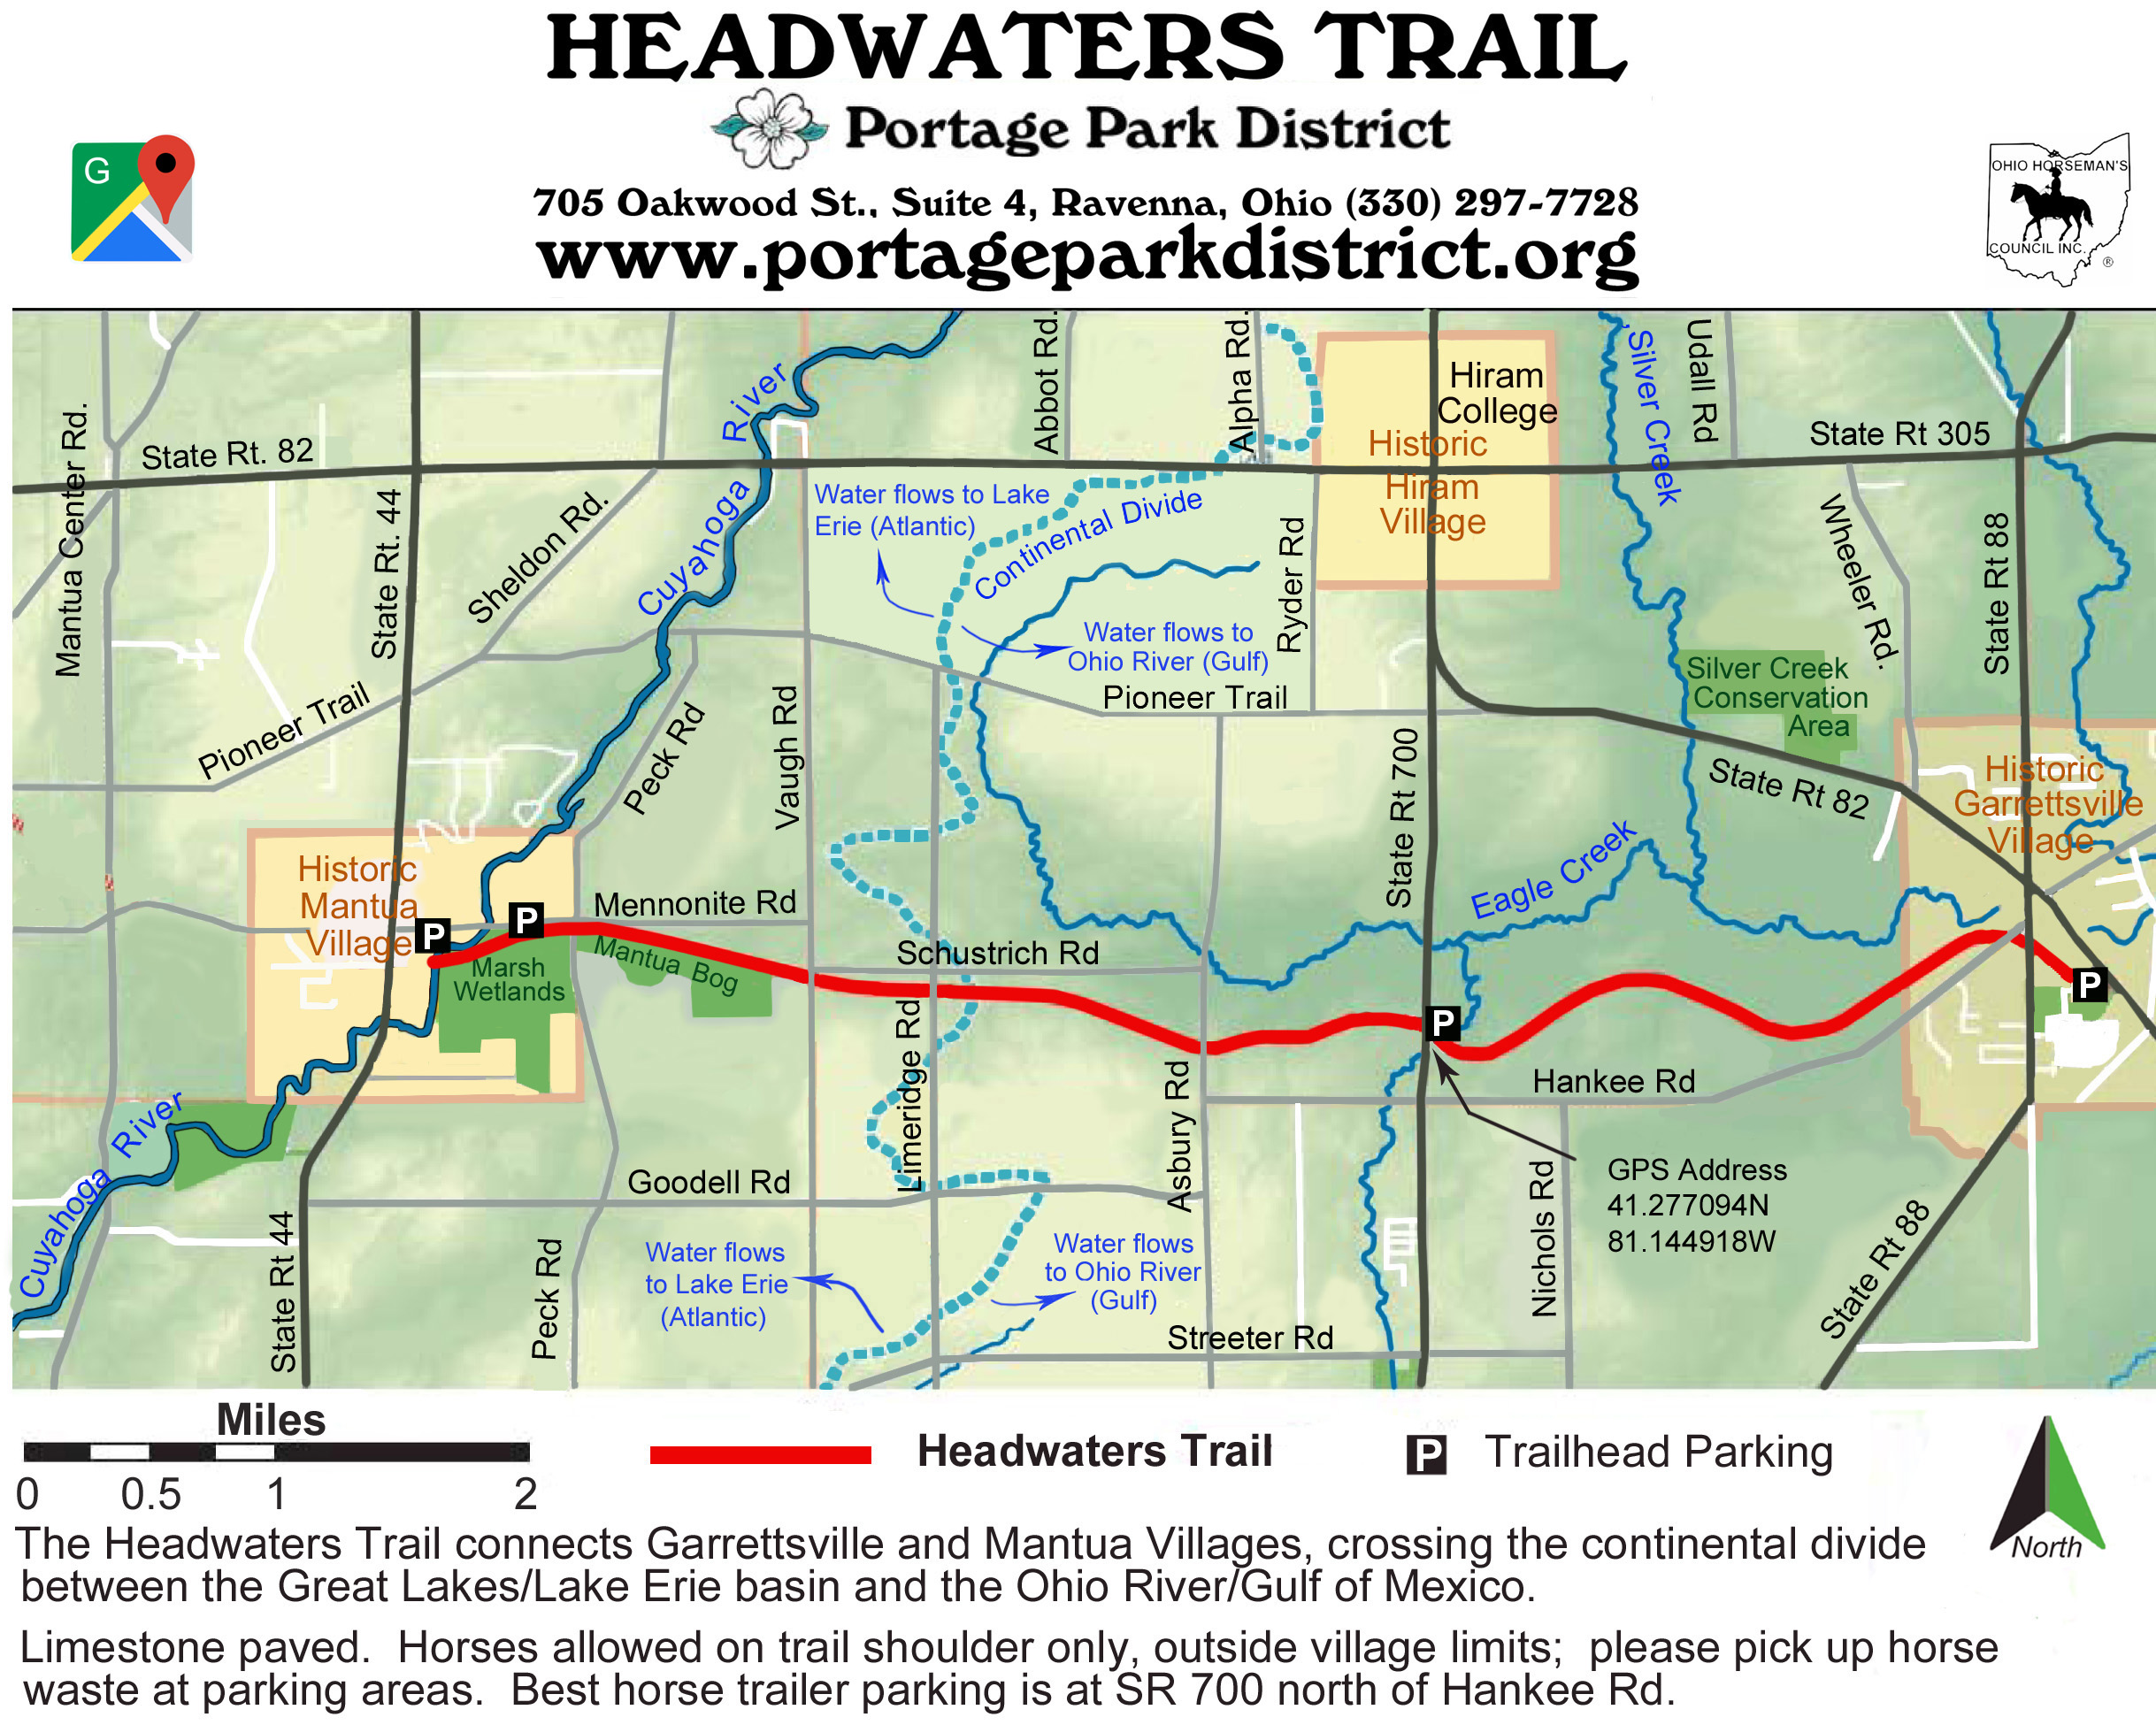 Headwaters Trail